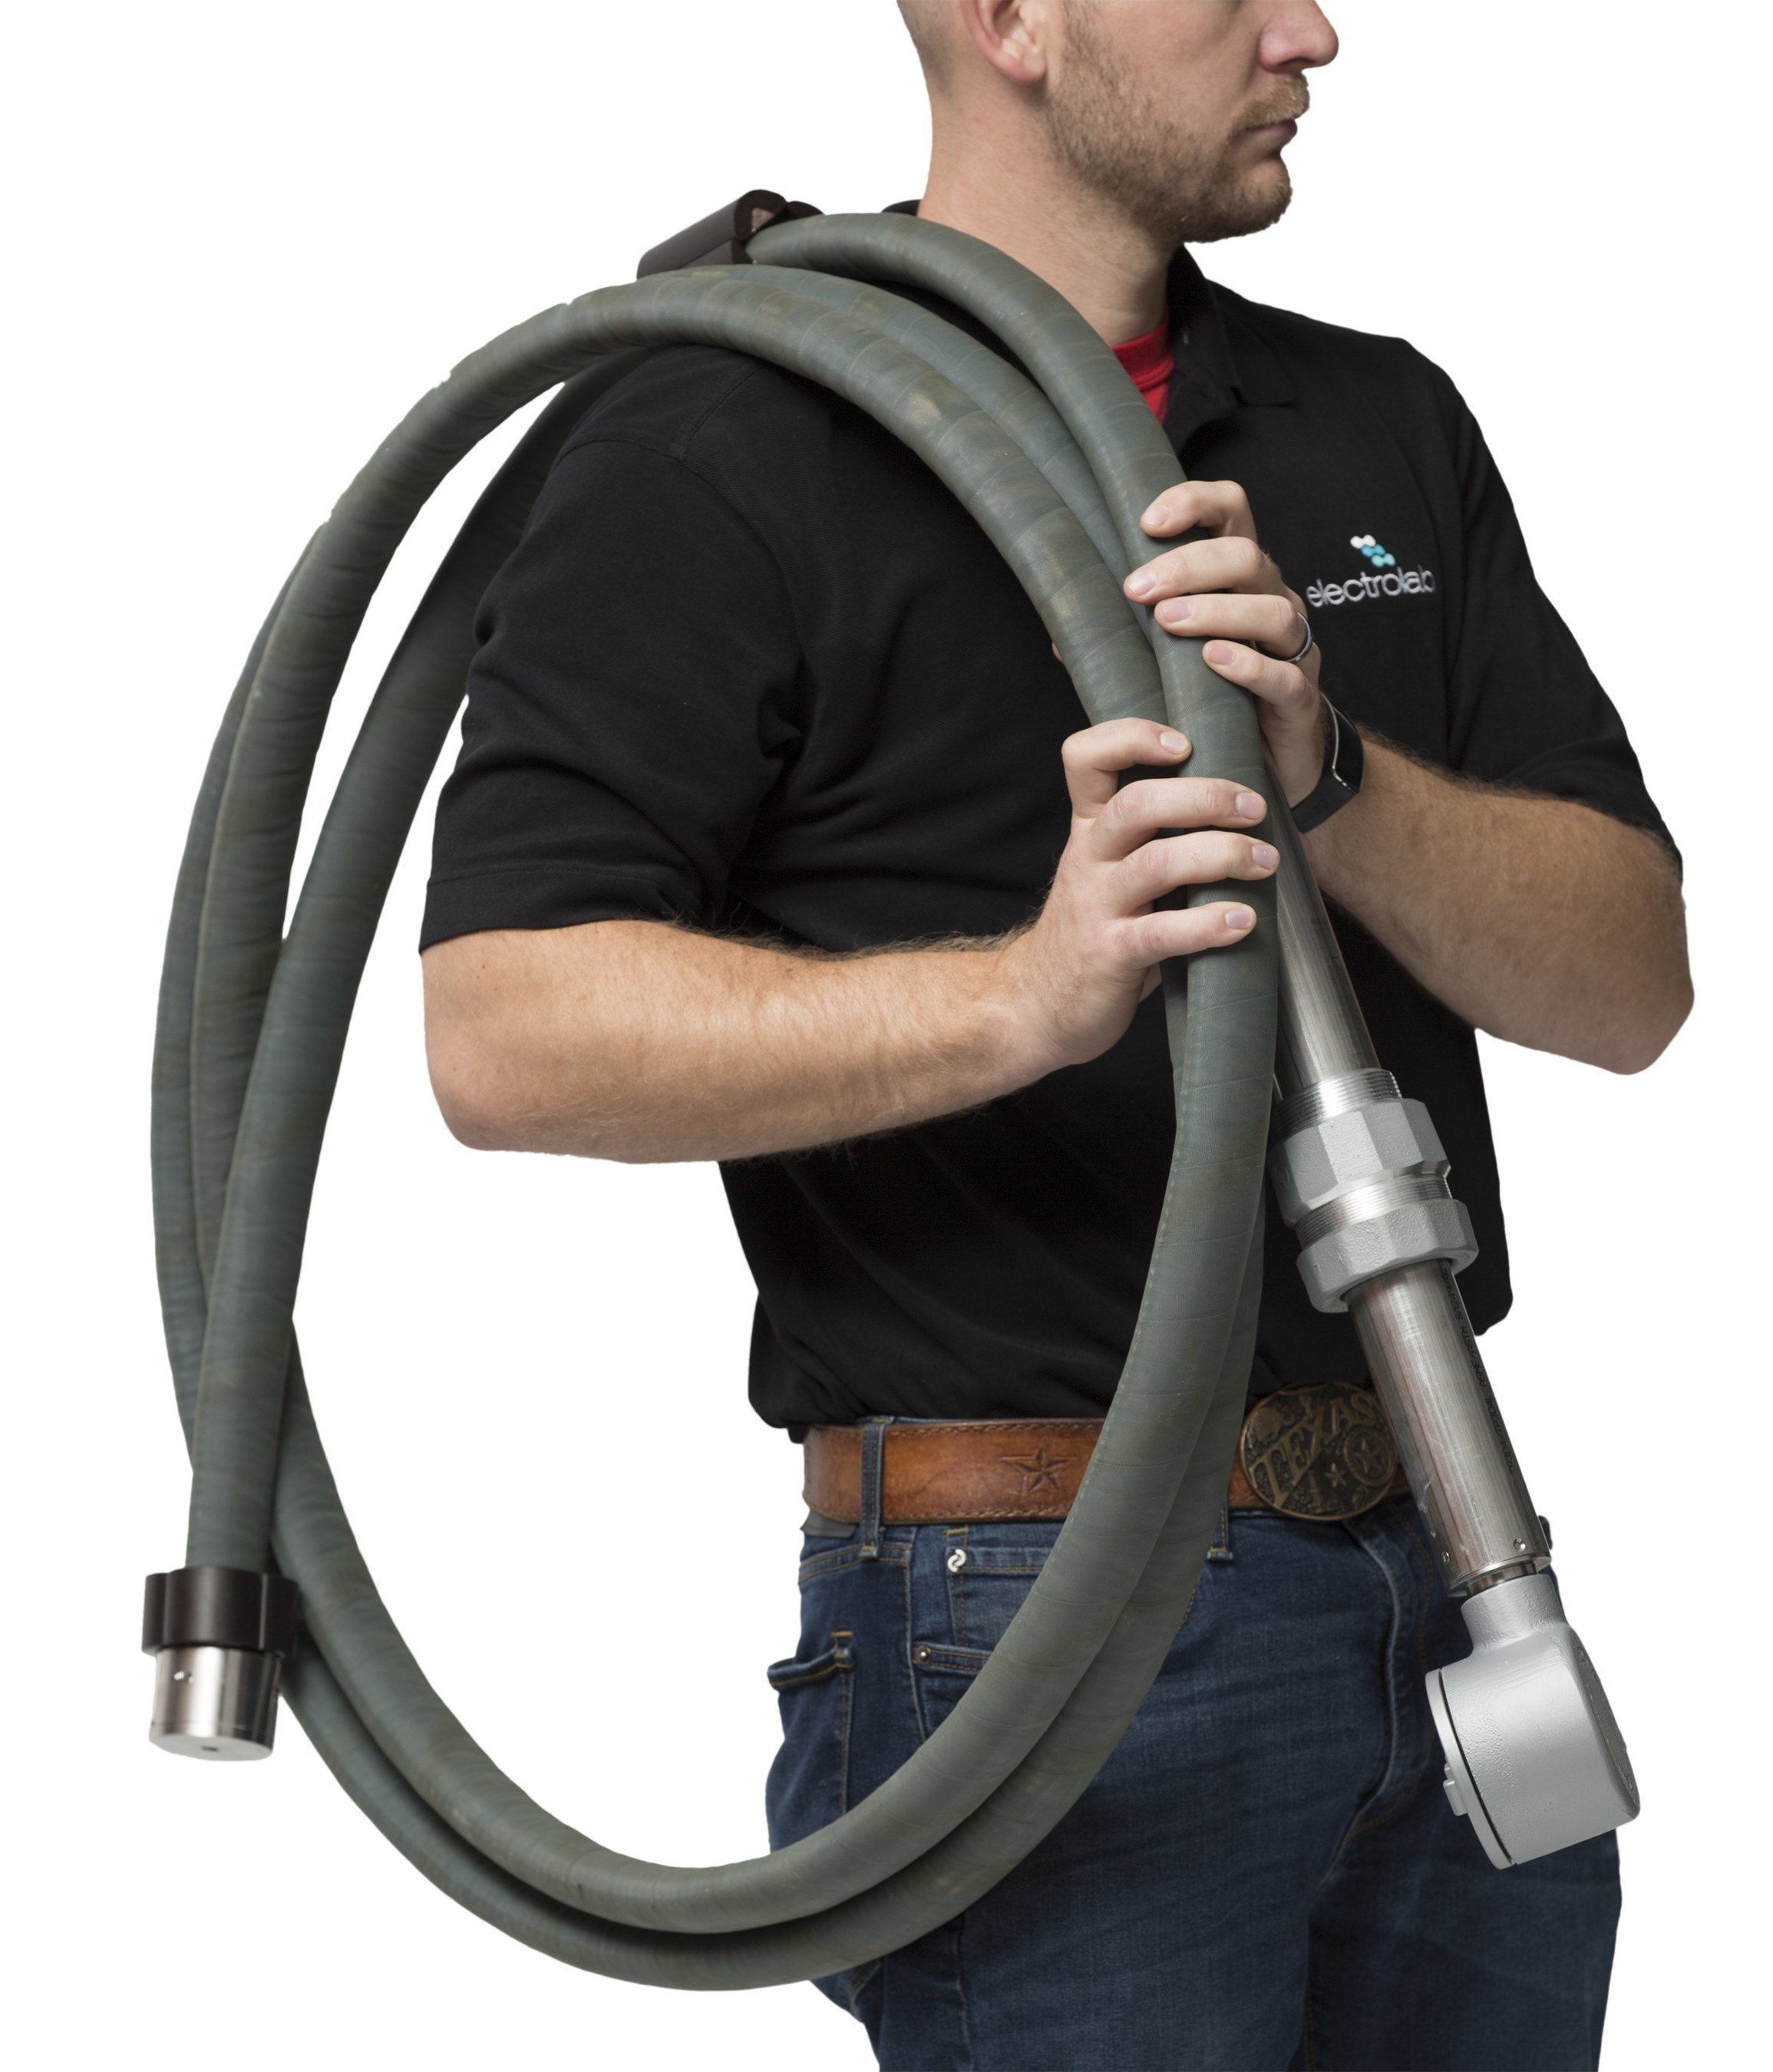 Electrolab's RU Flex 2100 DLS offers a rugged, flexible, chemically and abrasion resistant level sensor with increased measurement accuracy. One person can easily carry the RU Flex 2100 to the installation site and install the sensor in 15 minutes or less. No special equipment required! Visit www.electrolabcontrols.com to learn more or call us at 1-888-301-2400.